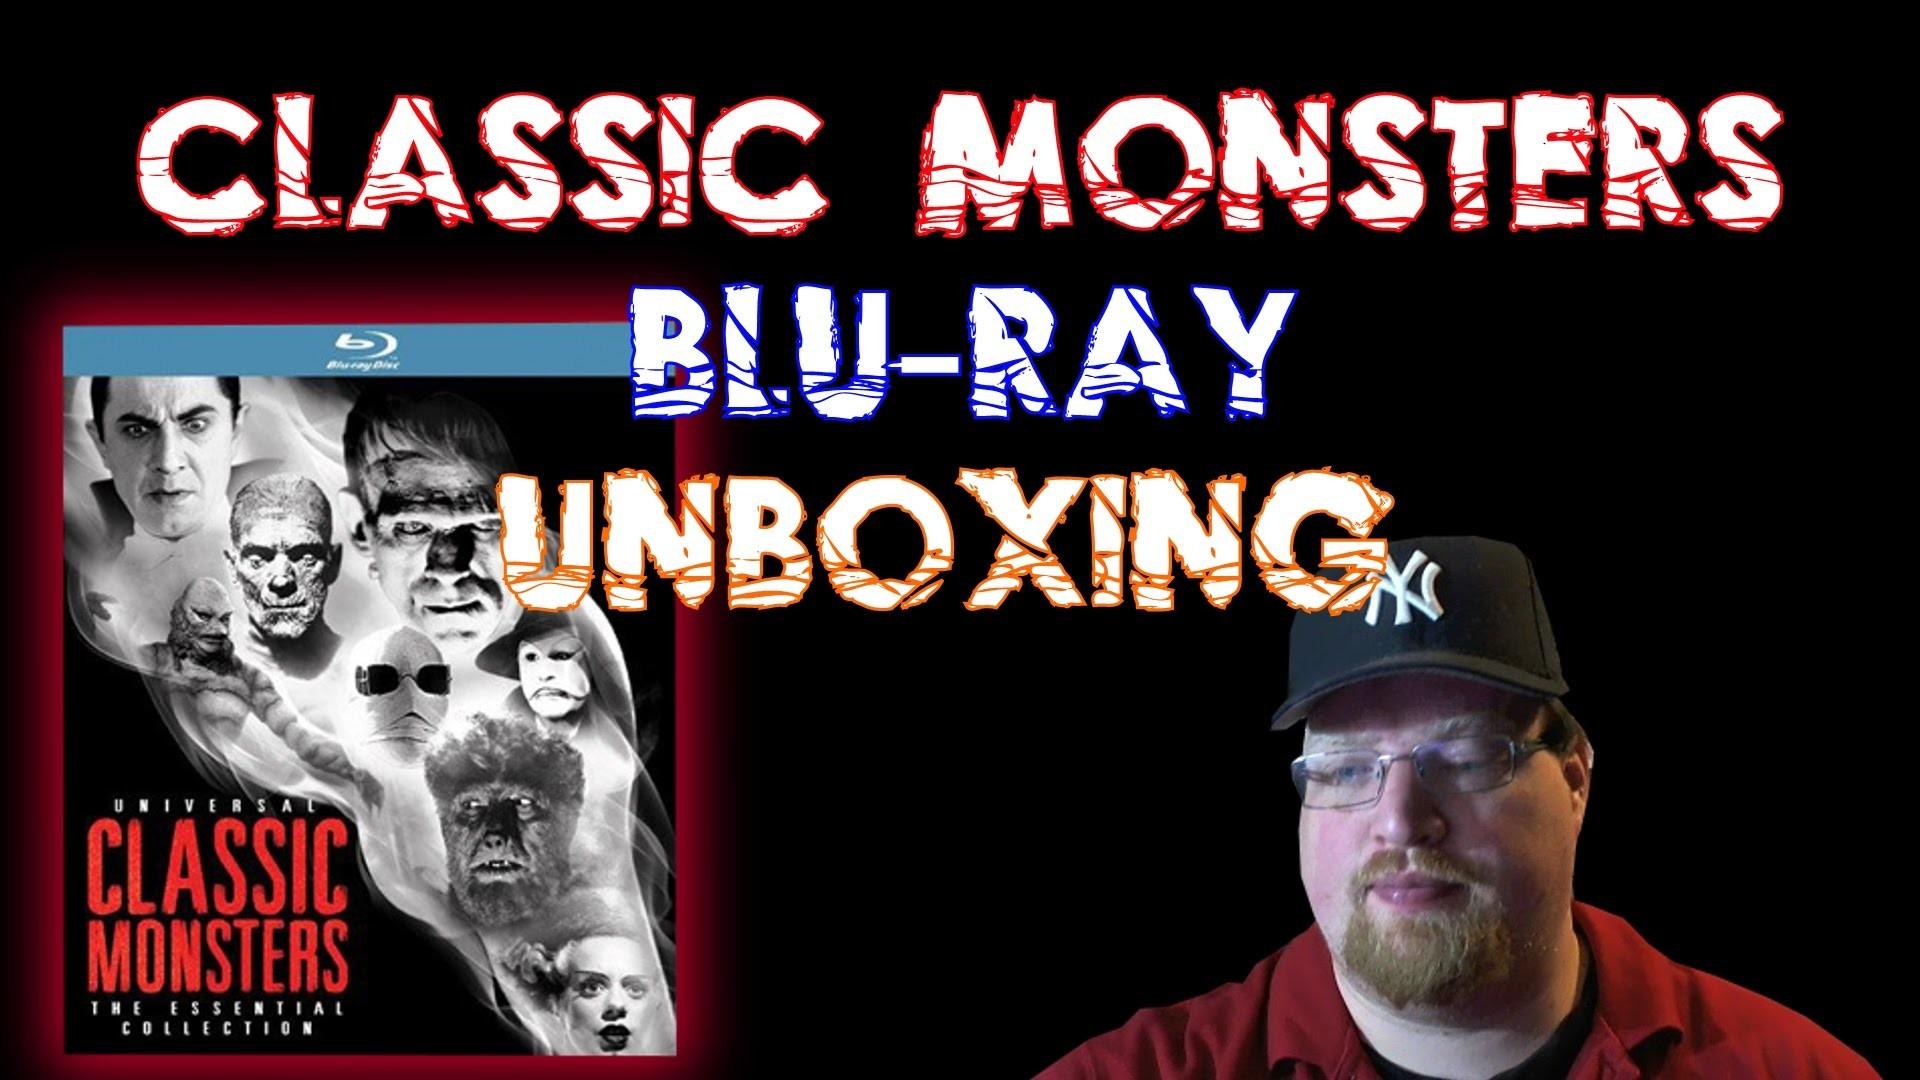 Universal Classic Monsters The Essentials Collection Blu-Ray Unboxing